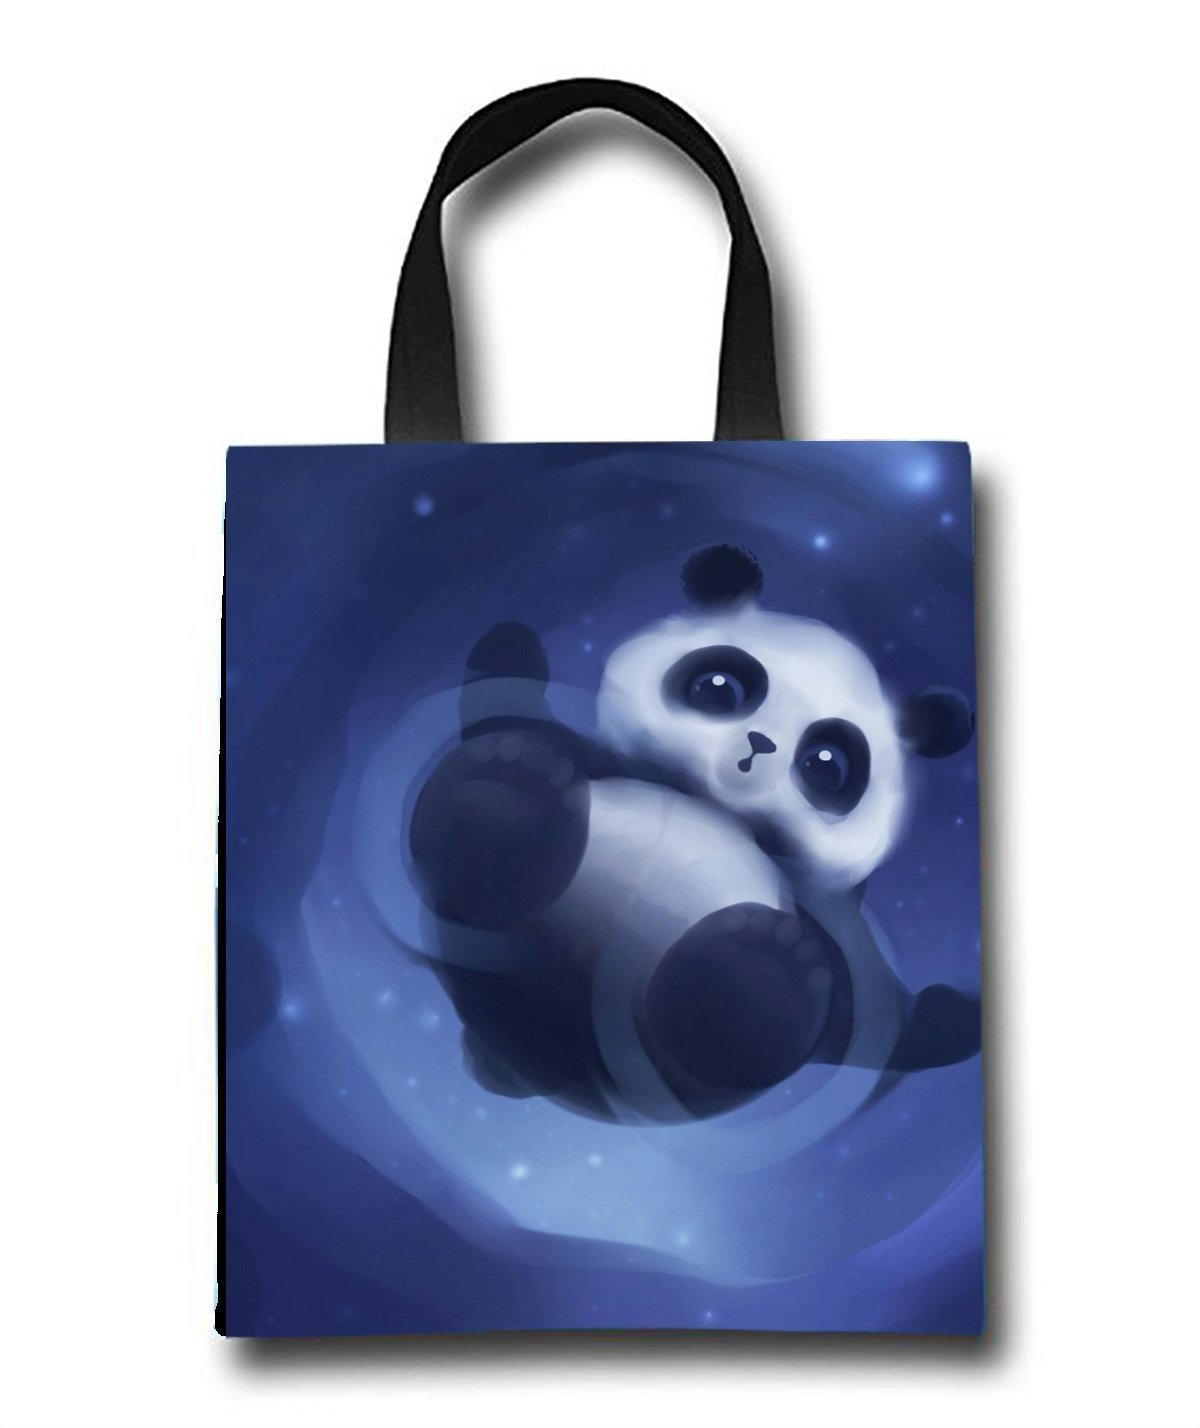 Cute Panda Beach Tote Bag - Toy Tote Bag - Large Lightweight Market, Grocery & Picnic